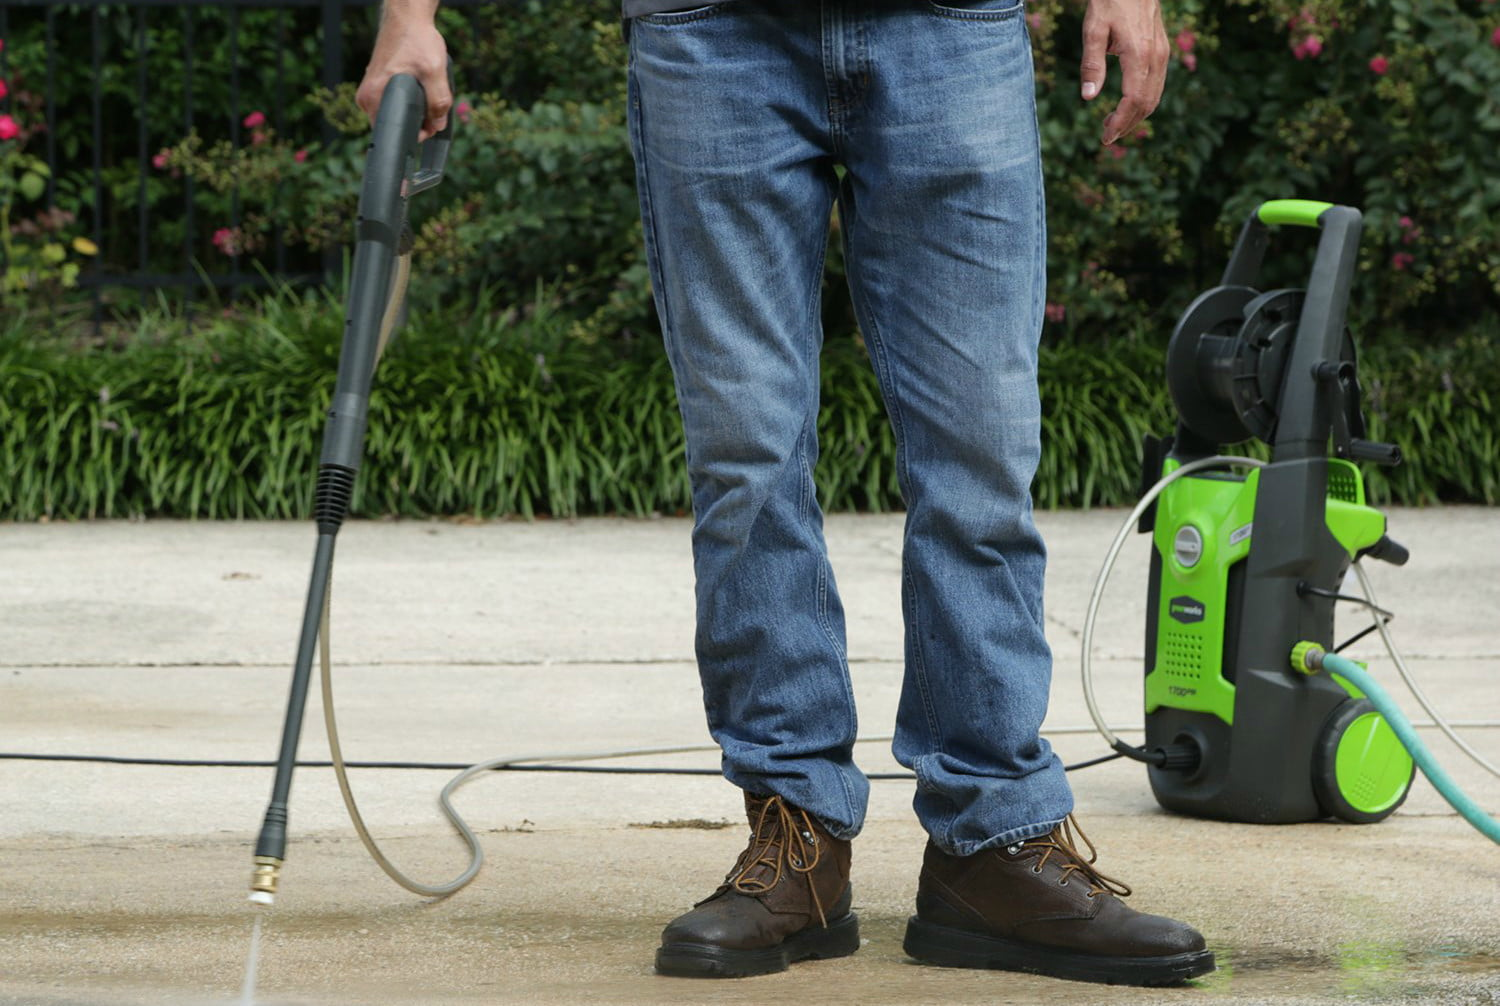 amazon deals on greenworks pressure washers and yard tools 1700 psi 13 amp 1 2 gpm washer with hose reel gpw1702